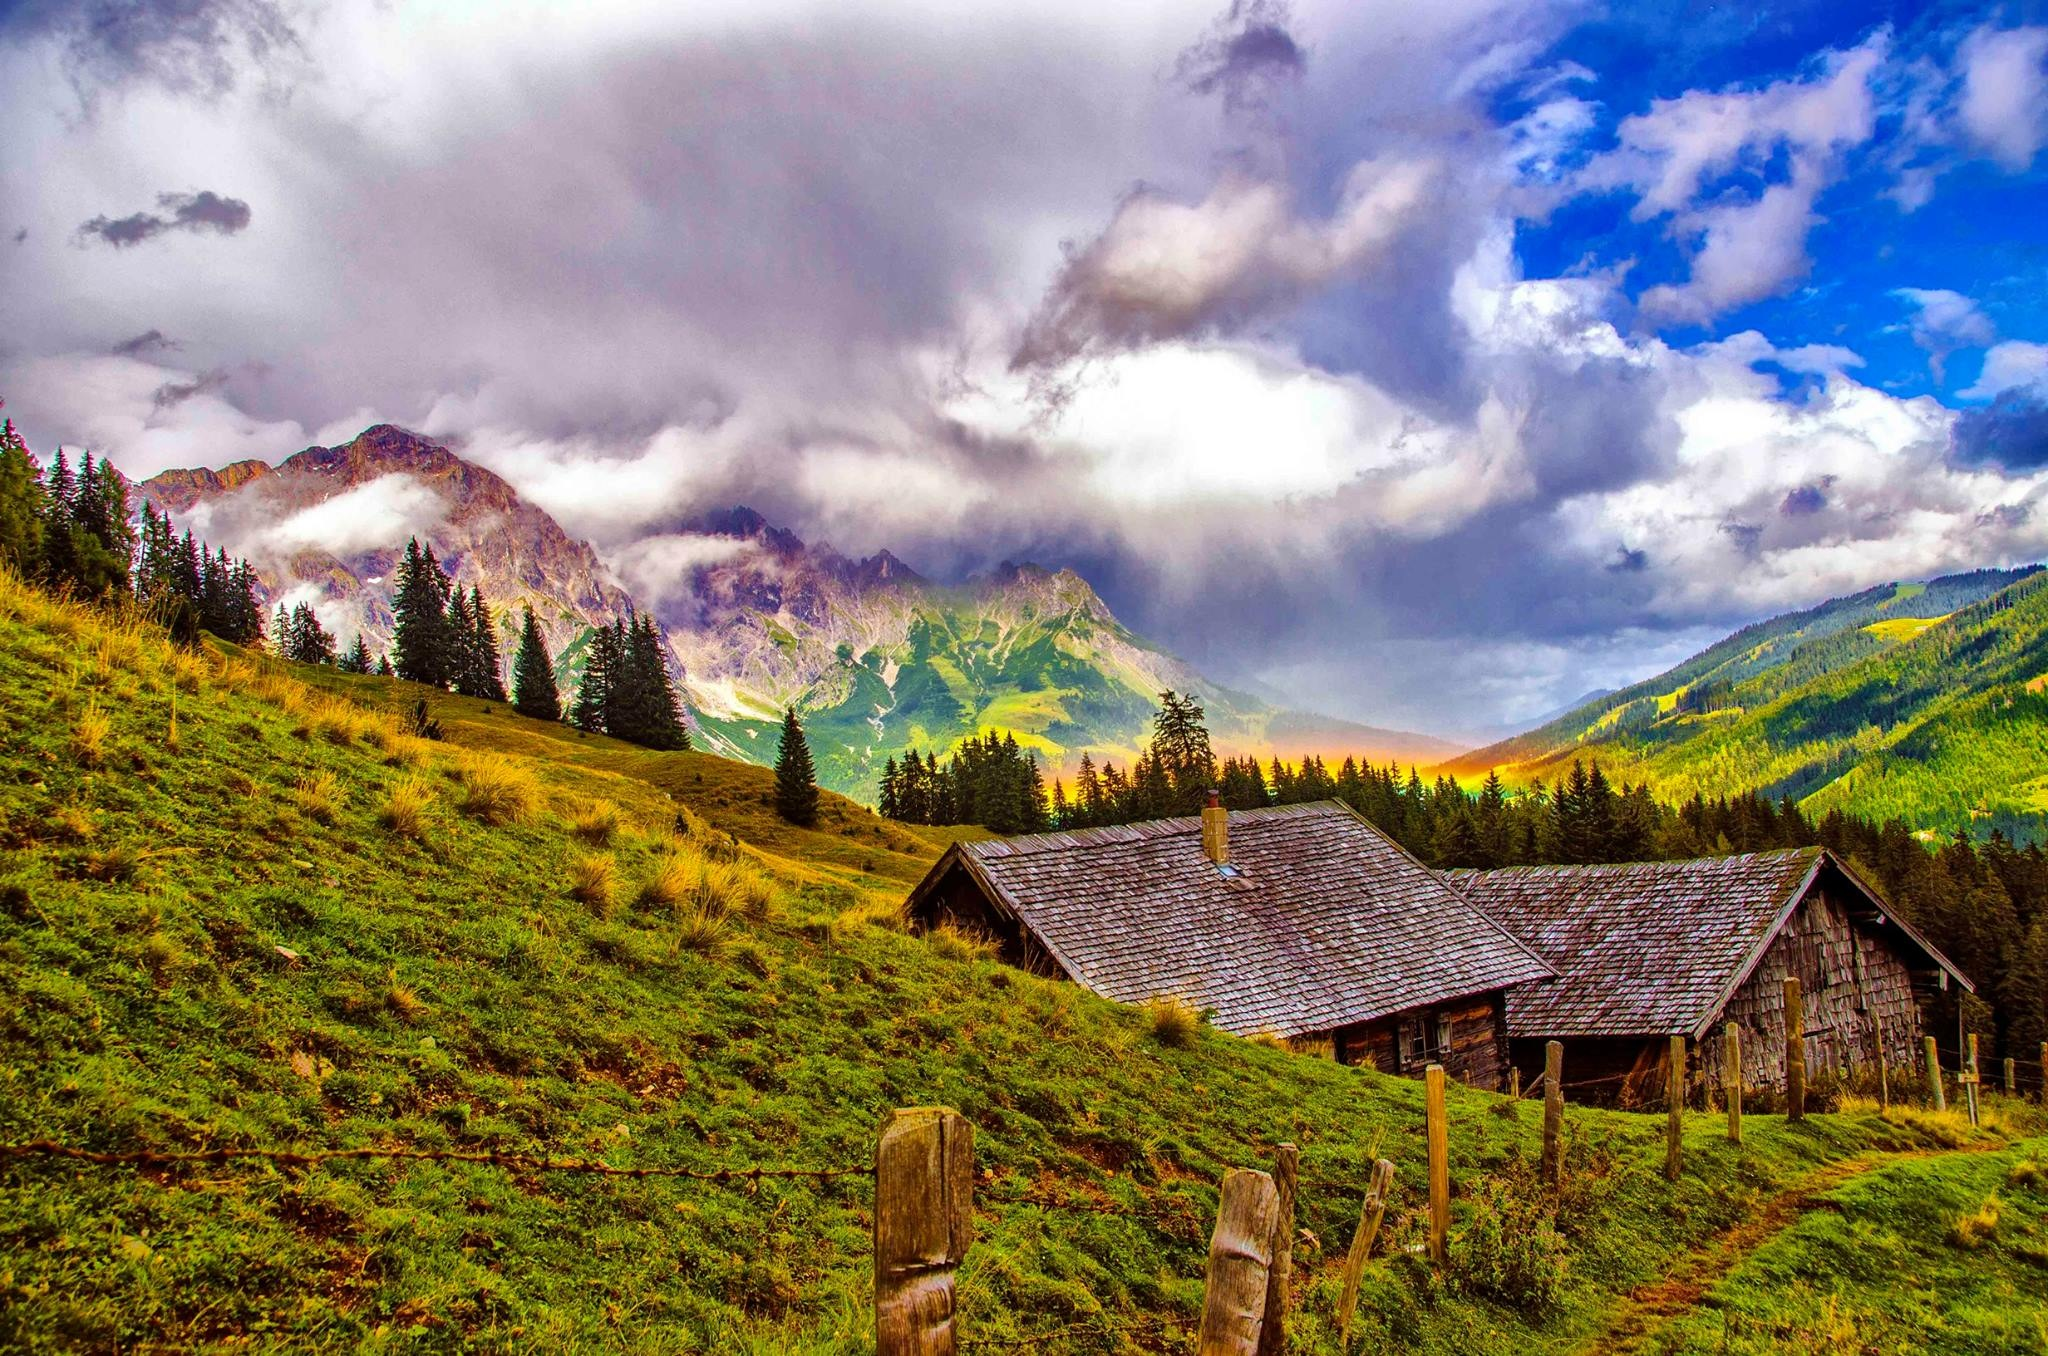 Little house in the Alps by Manny D Suriel